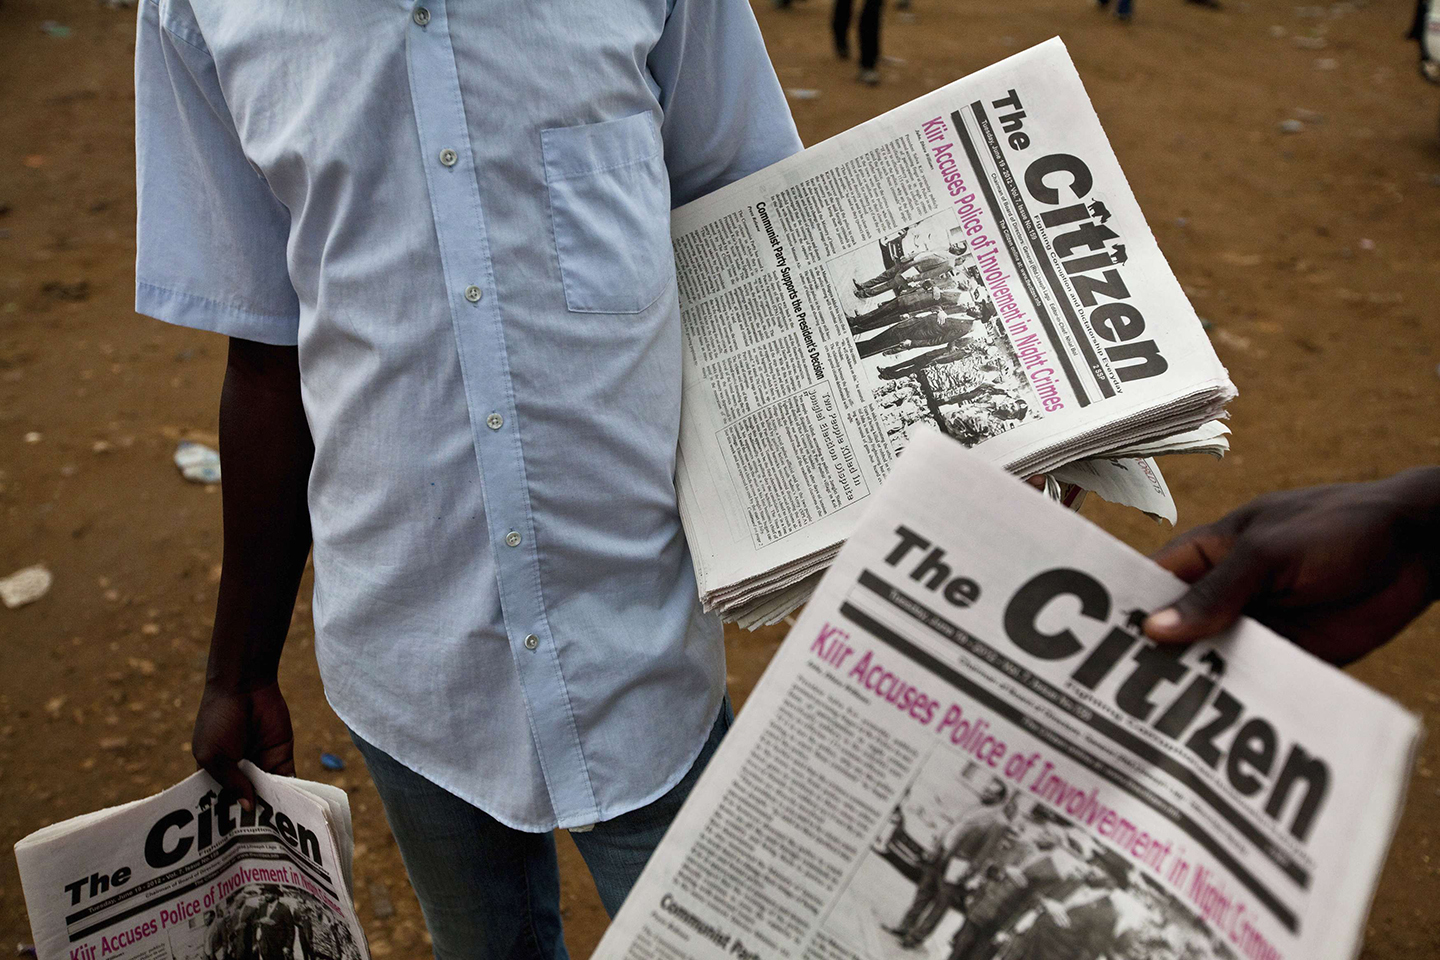 Newspaper vendors sell The Citizen newspaper at a bus station in Juba, June 19, 2012. In South Sudan, where most people get their news not from the Internet, newspapers or television but from the radio, Mading Ngor is about as big as journalists get. The 29-year-old is decidedly not impartial. But his brash, crusading reports and interviews on Bakhita Radio are required listening. Picture taken June 19, 2012. To match Special Report SOUTH-SUDAN/RADIO  REUTERS/Adriane Ohanesian (SOUTH SUDAN - Tags: ANNIVERSARY SOCIETY MEDIA BUSINESS) (Newscom TagID: rtrlfive359166.jpg) [Photo via Newscom]